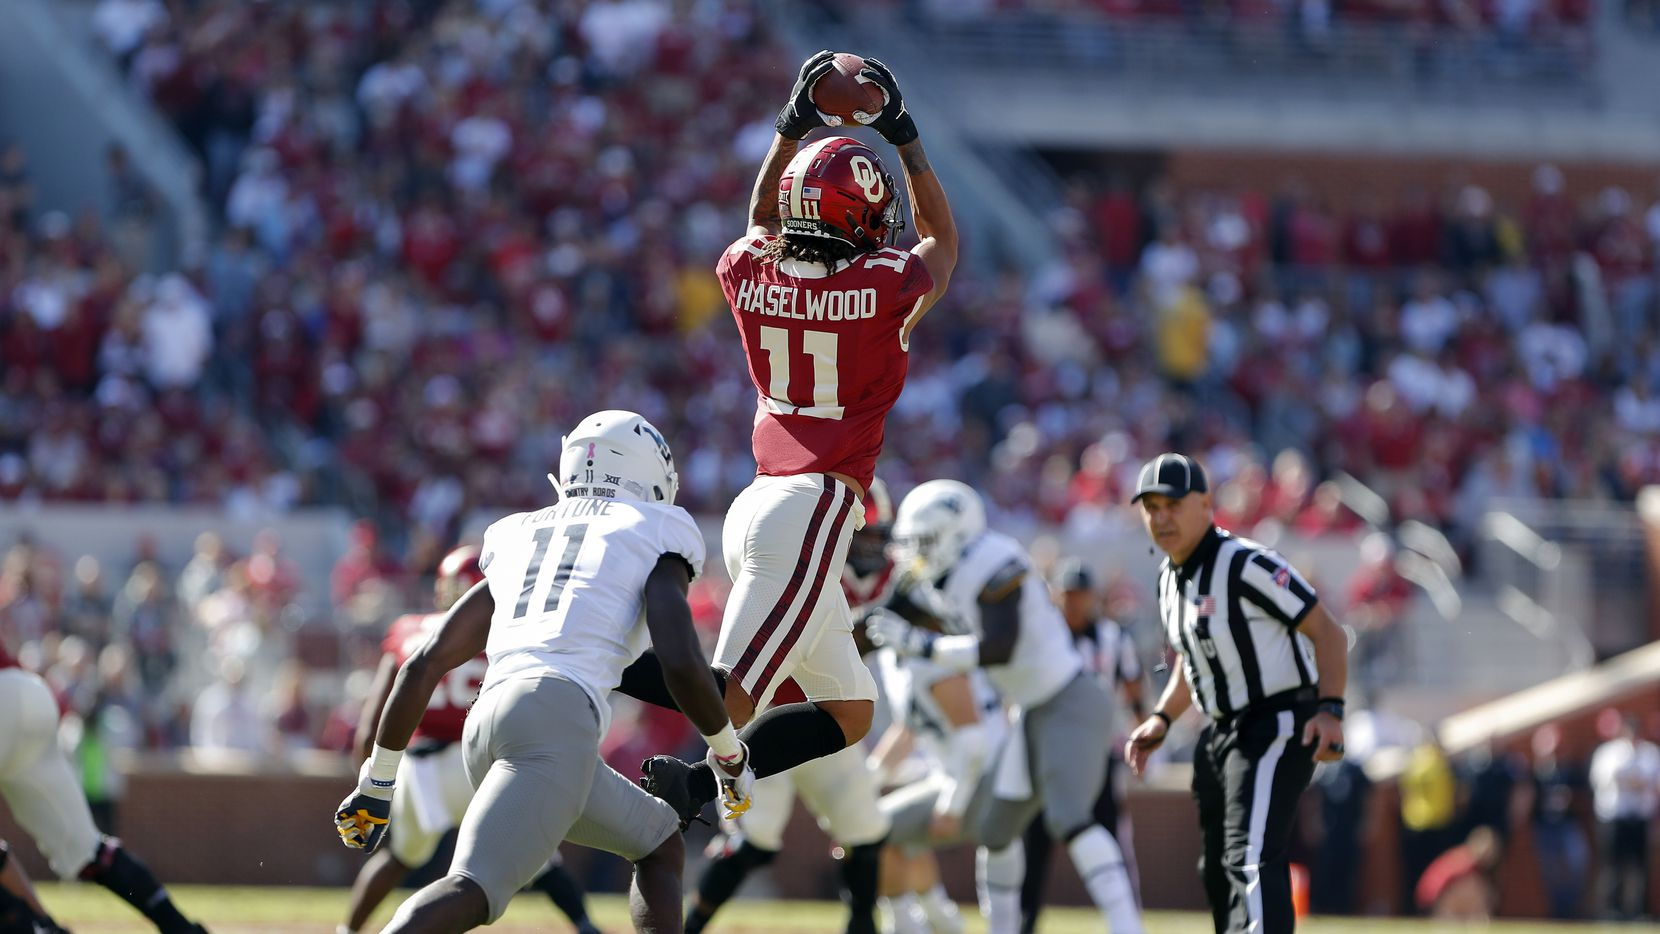 Oklahoma wide receiver Jadon Haselwood (11) makes a catch ahead of West Virginia cornerback Nicktroy Fortune (11) during the first half of an NCAA college football game in Norman, Okla., Saturday, Oct. 19, 2019.